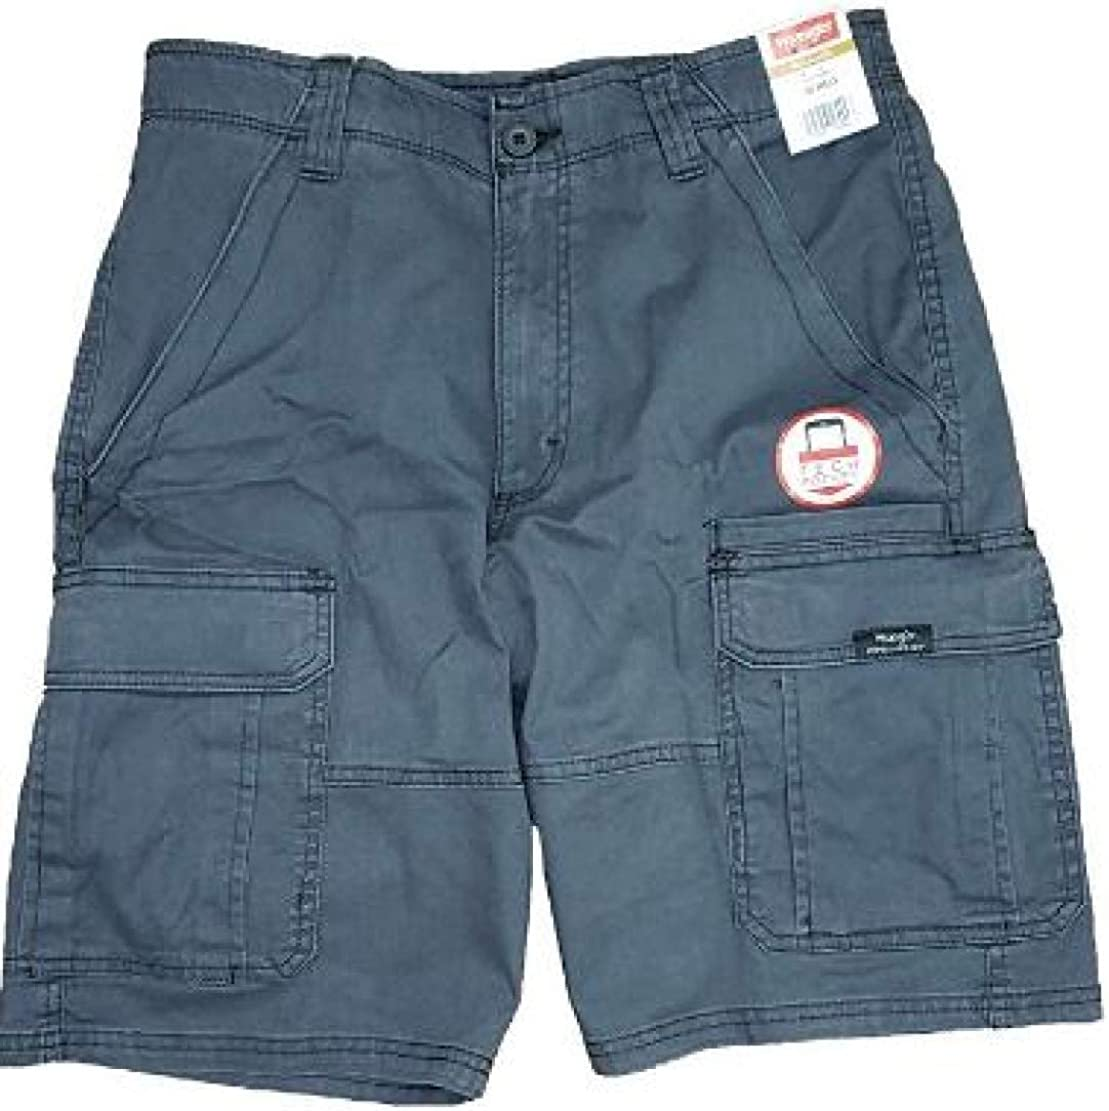 Wrangler Anthracite Relaxed Fit at Knee Flex Cargo Shorts